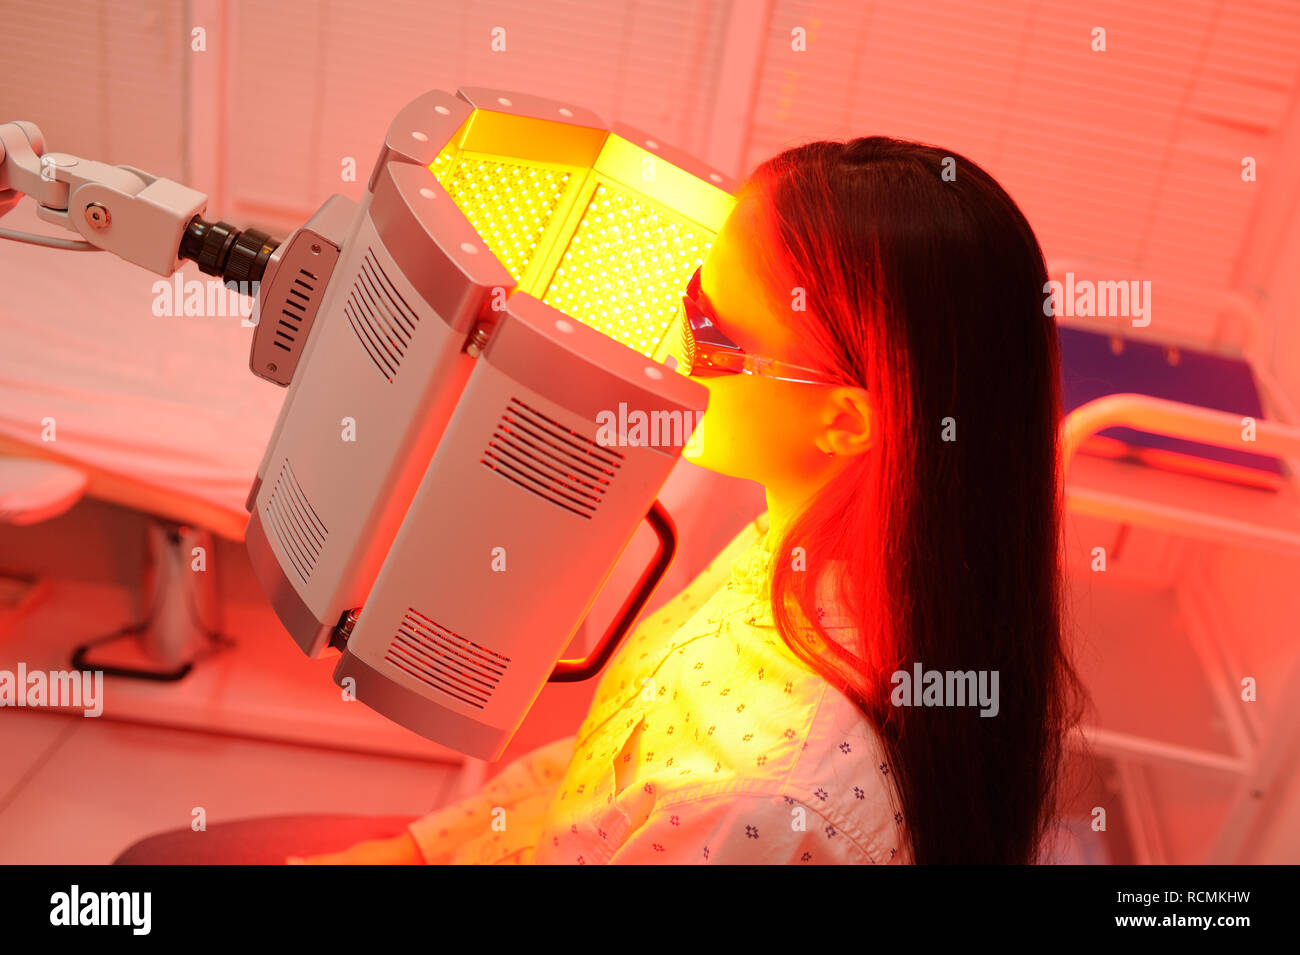 The girl goes through a course of skin rejuvenation with the help of red light treatment. - Stock Image